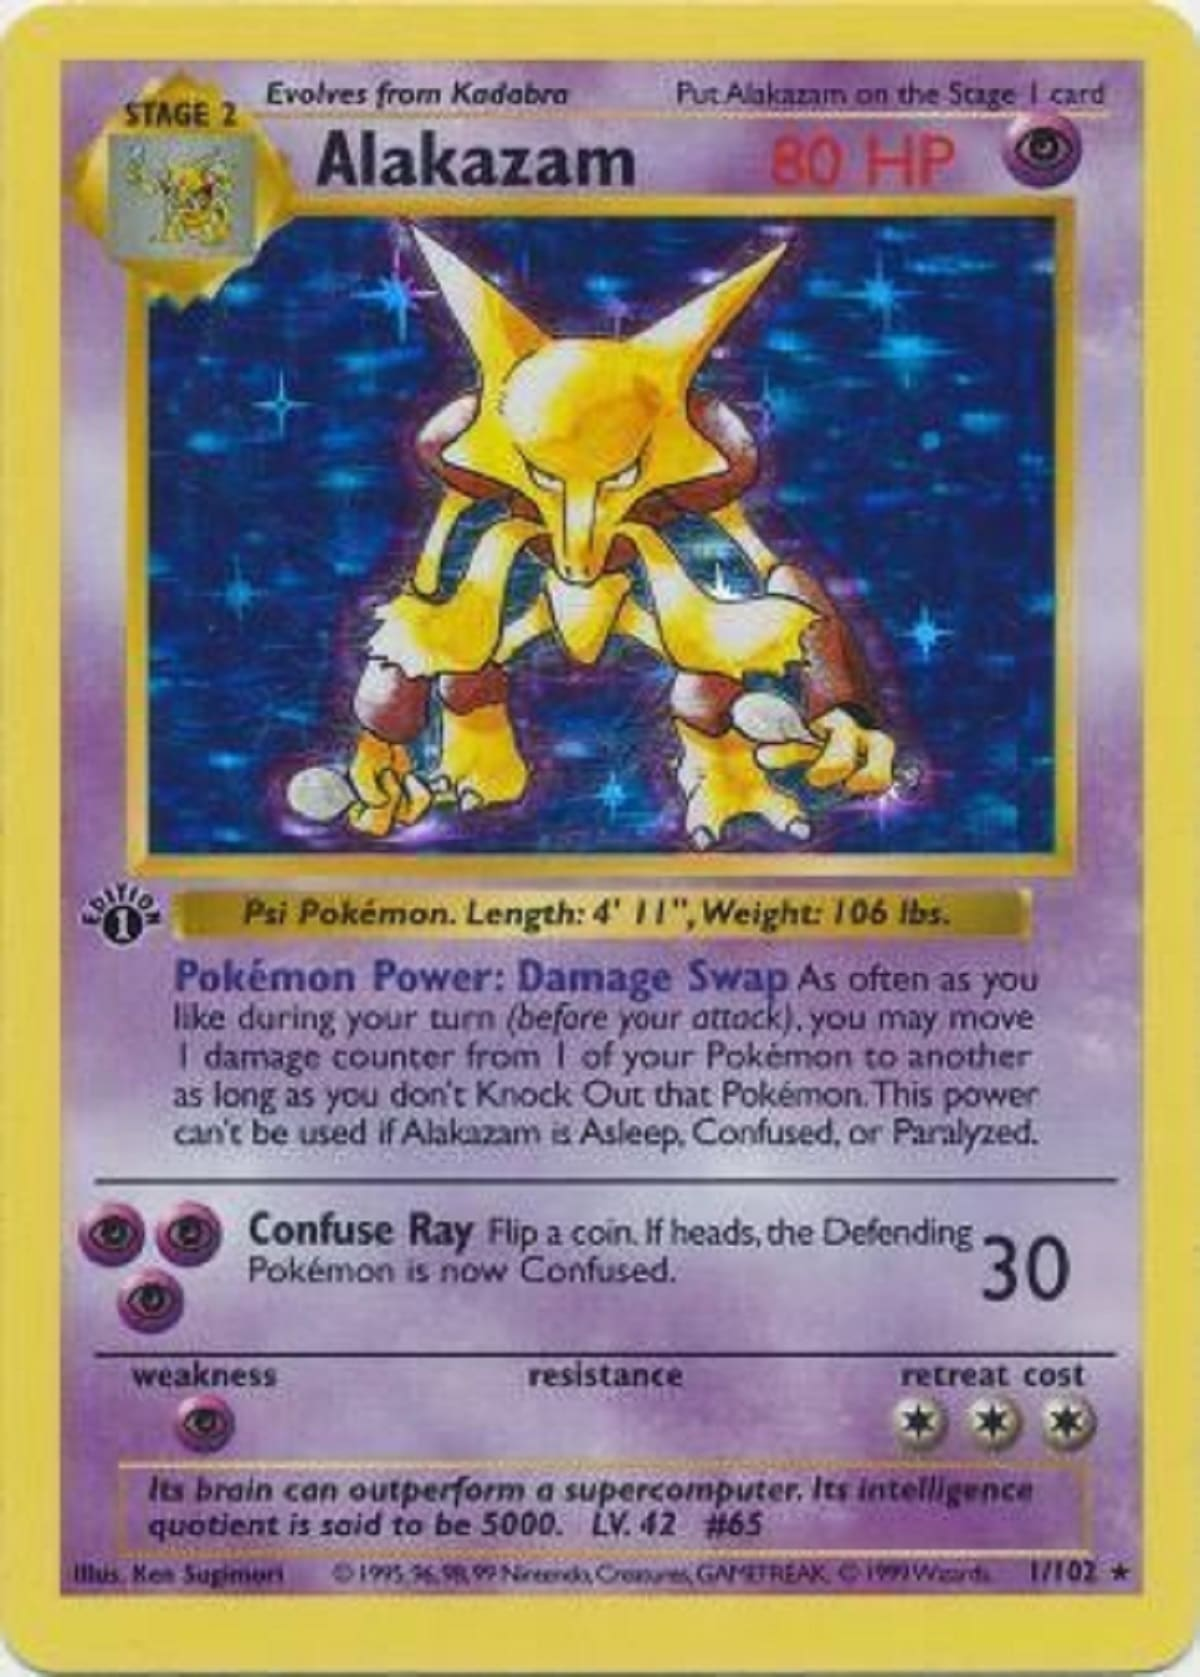 Alakazam card. Photo cred: Troll and Toad